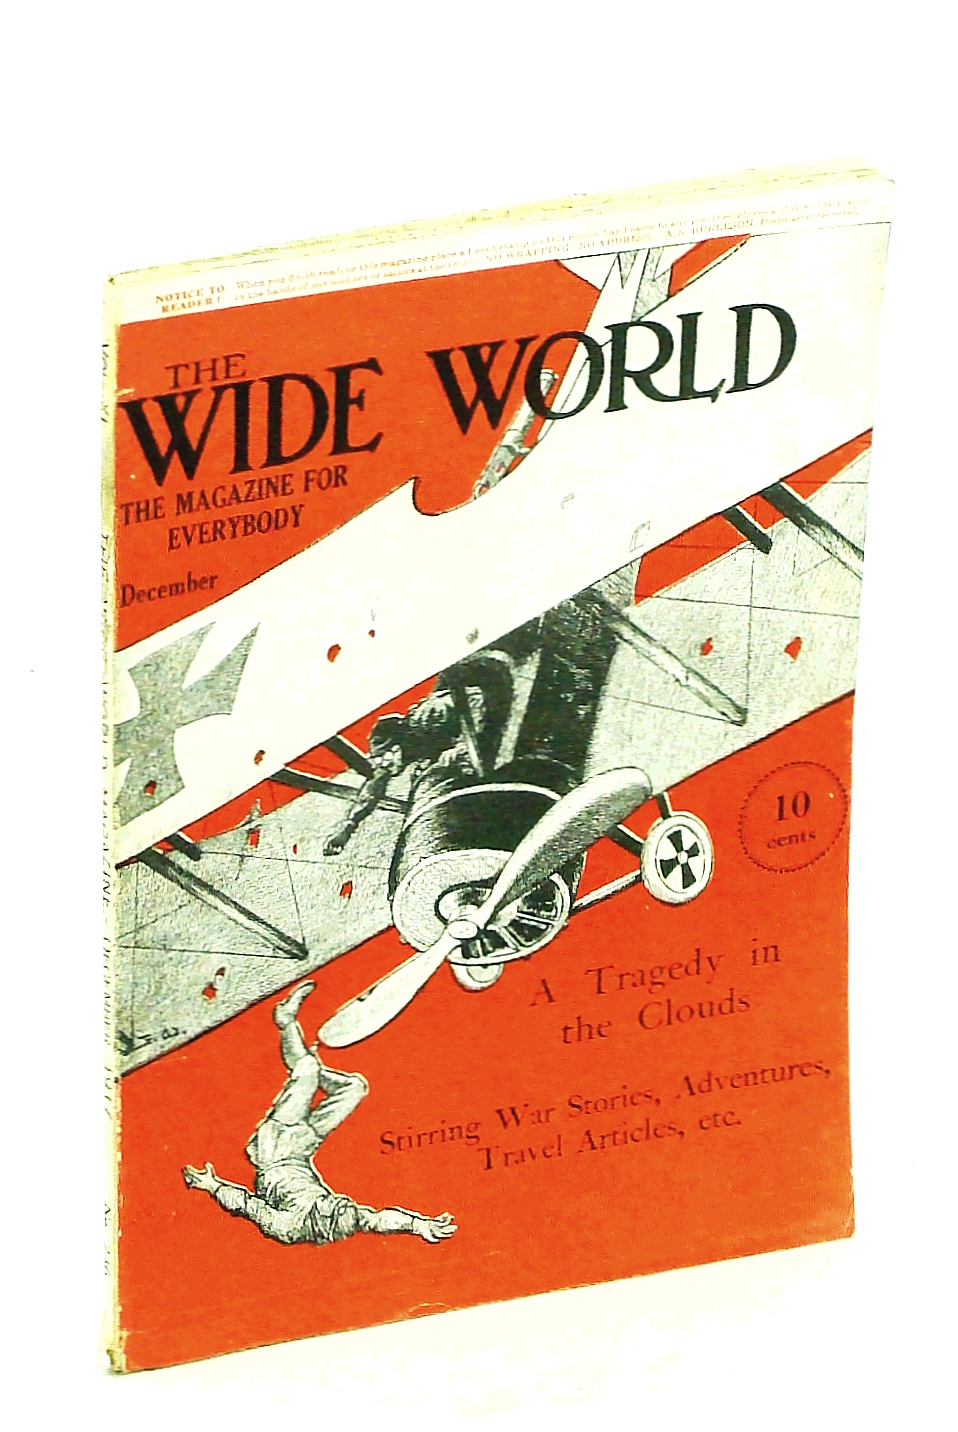 Image for The Wide World, The Magazine for Men, December [Dec.} 1917, Vol. 40, No. 236: Capturing Wild Animals Alive